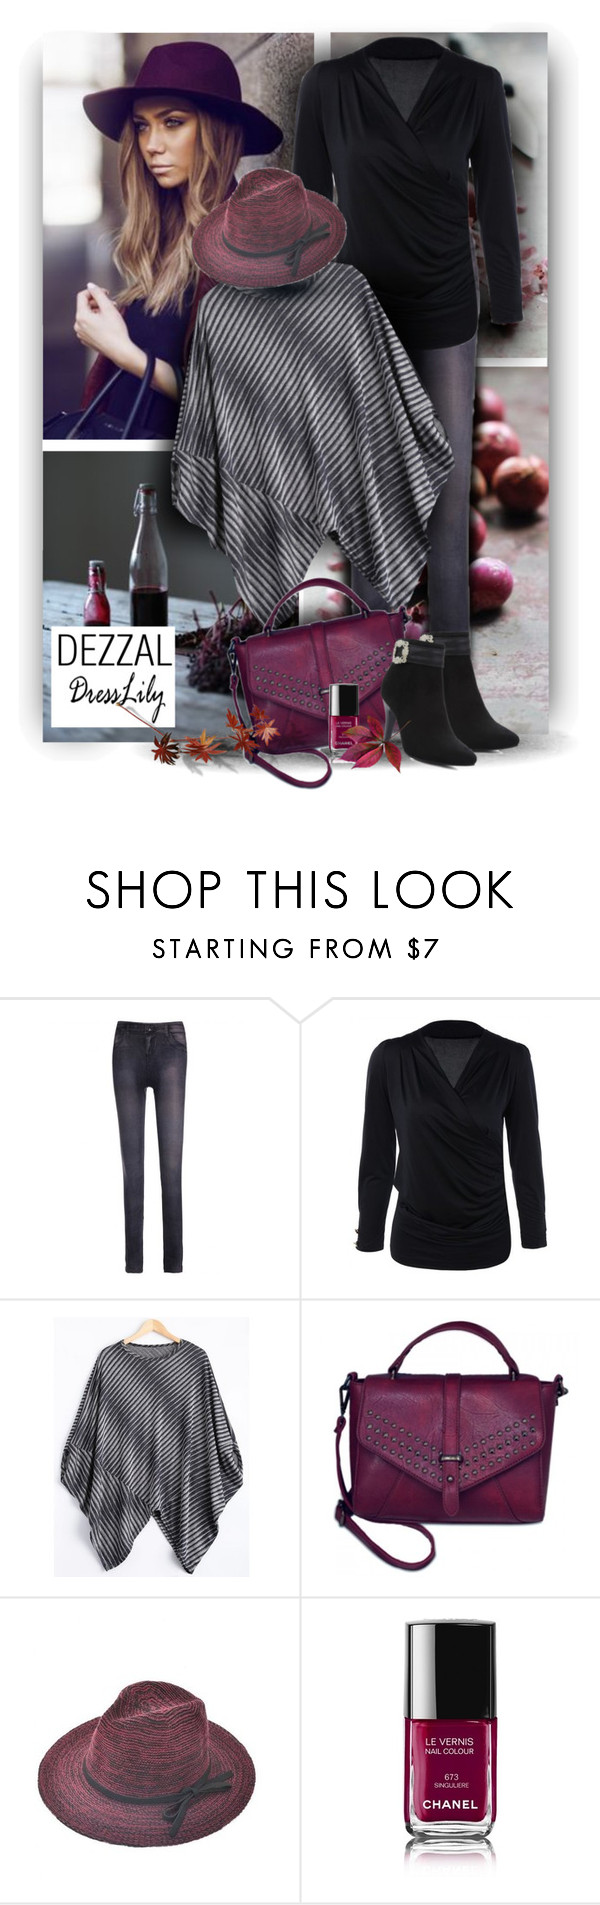 """Happy Sunday with Dresslily and DEZZAL"" by christiana40 ❤ liked on Polyvore featuring Chanel and modern"